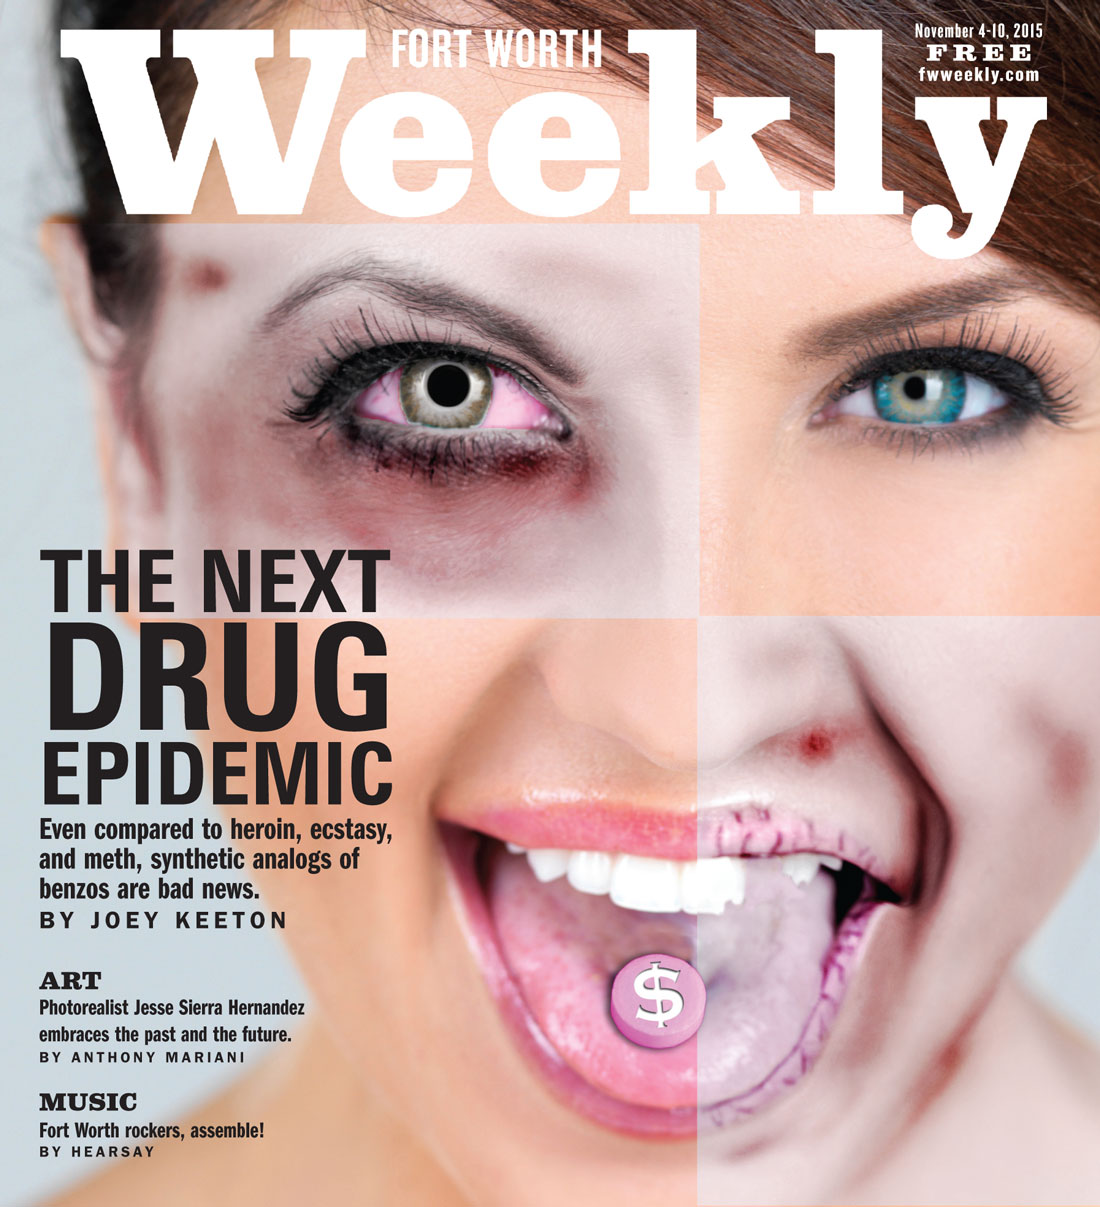 The Next Drug Epidemic - Fort Worth Weekly